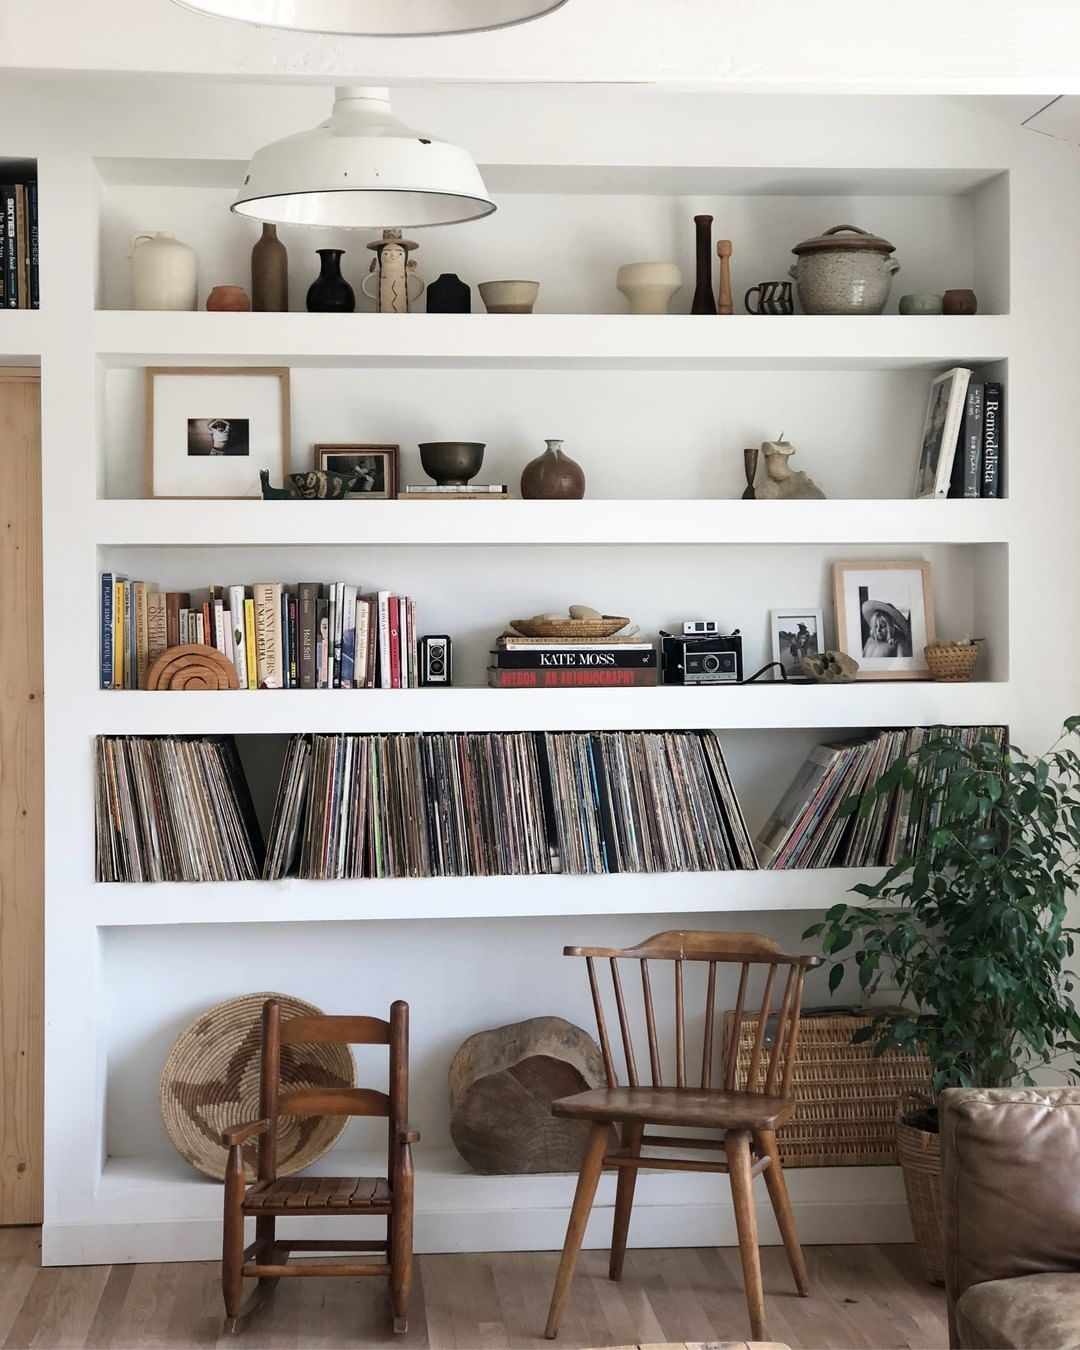 Your Bookshelf S Best Look Follow In The Lead Of Houseinhabit And Dress Up Your Space With Pictu Bookshelf Design Home Decor Scandinavian Design Living Room